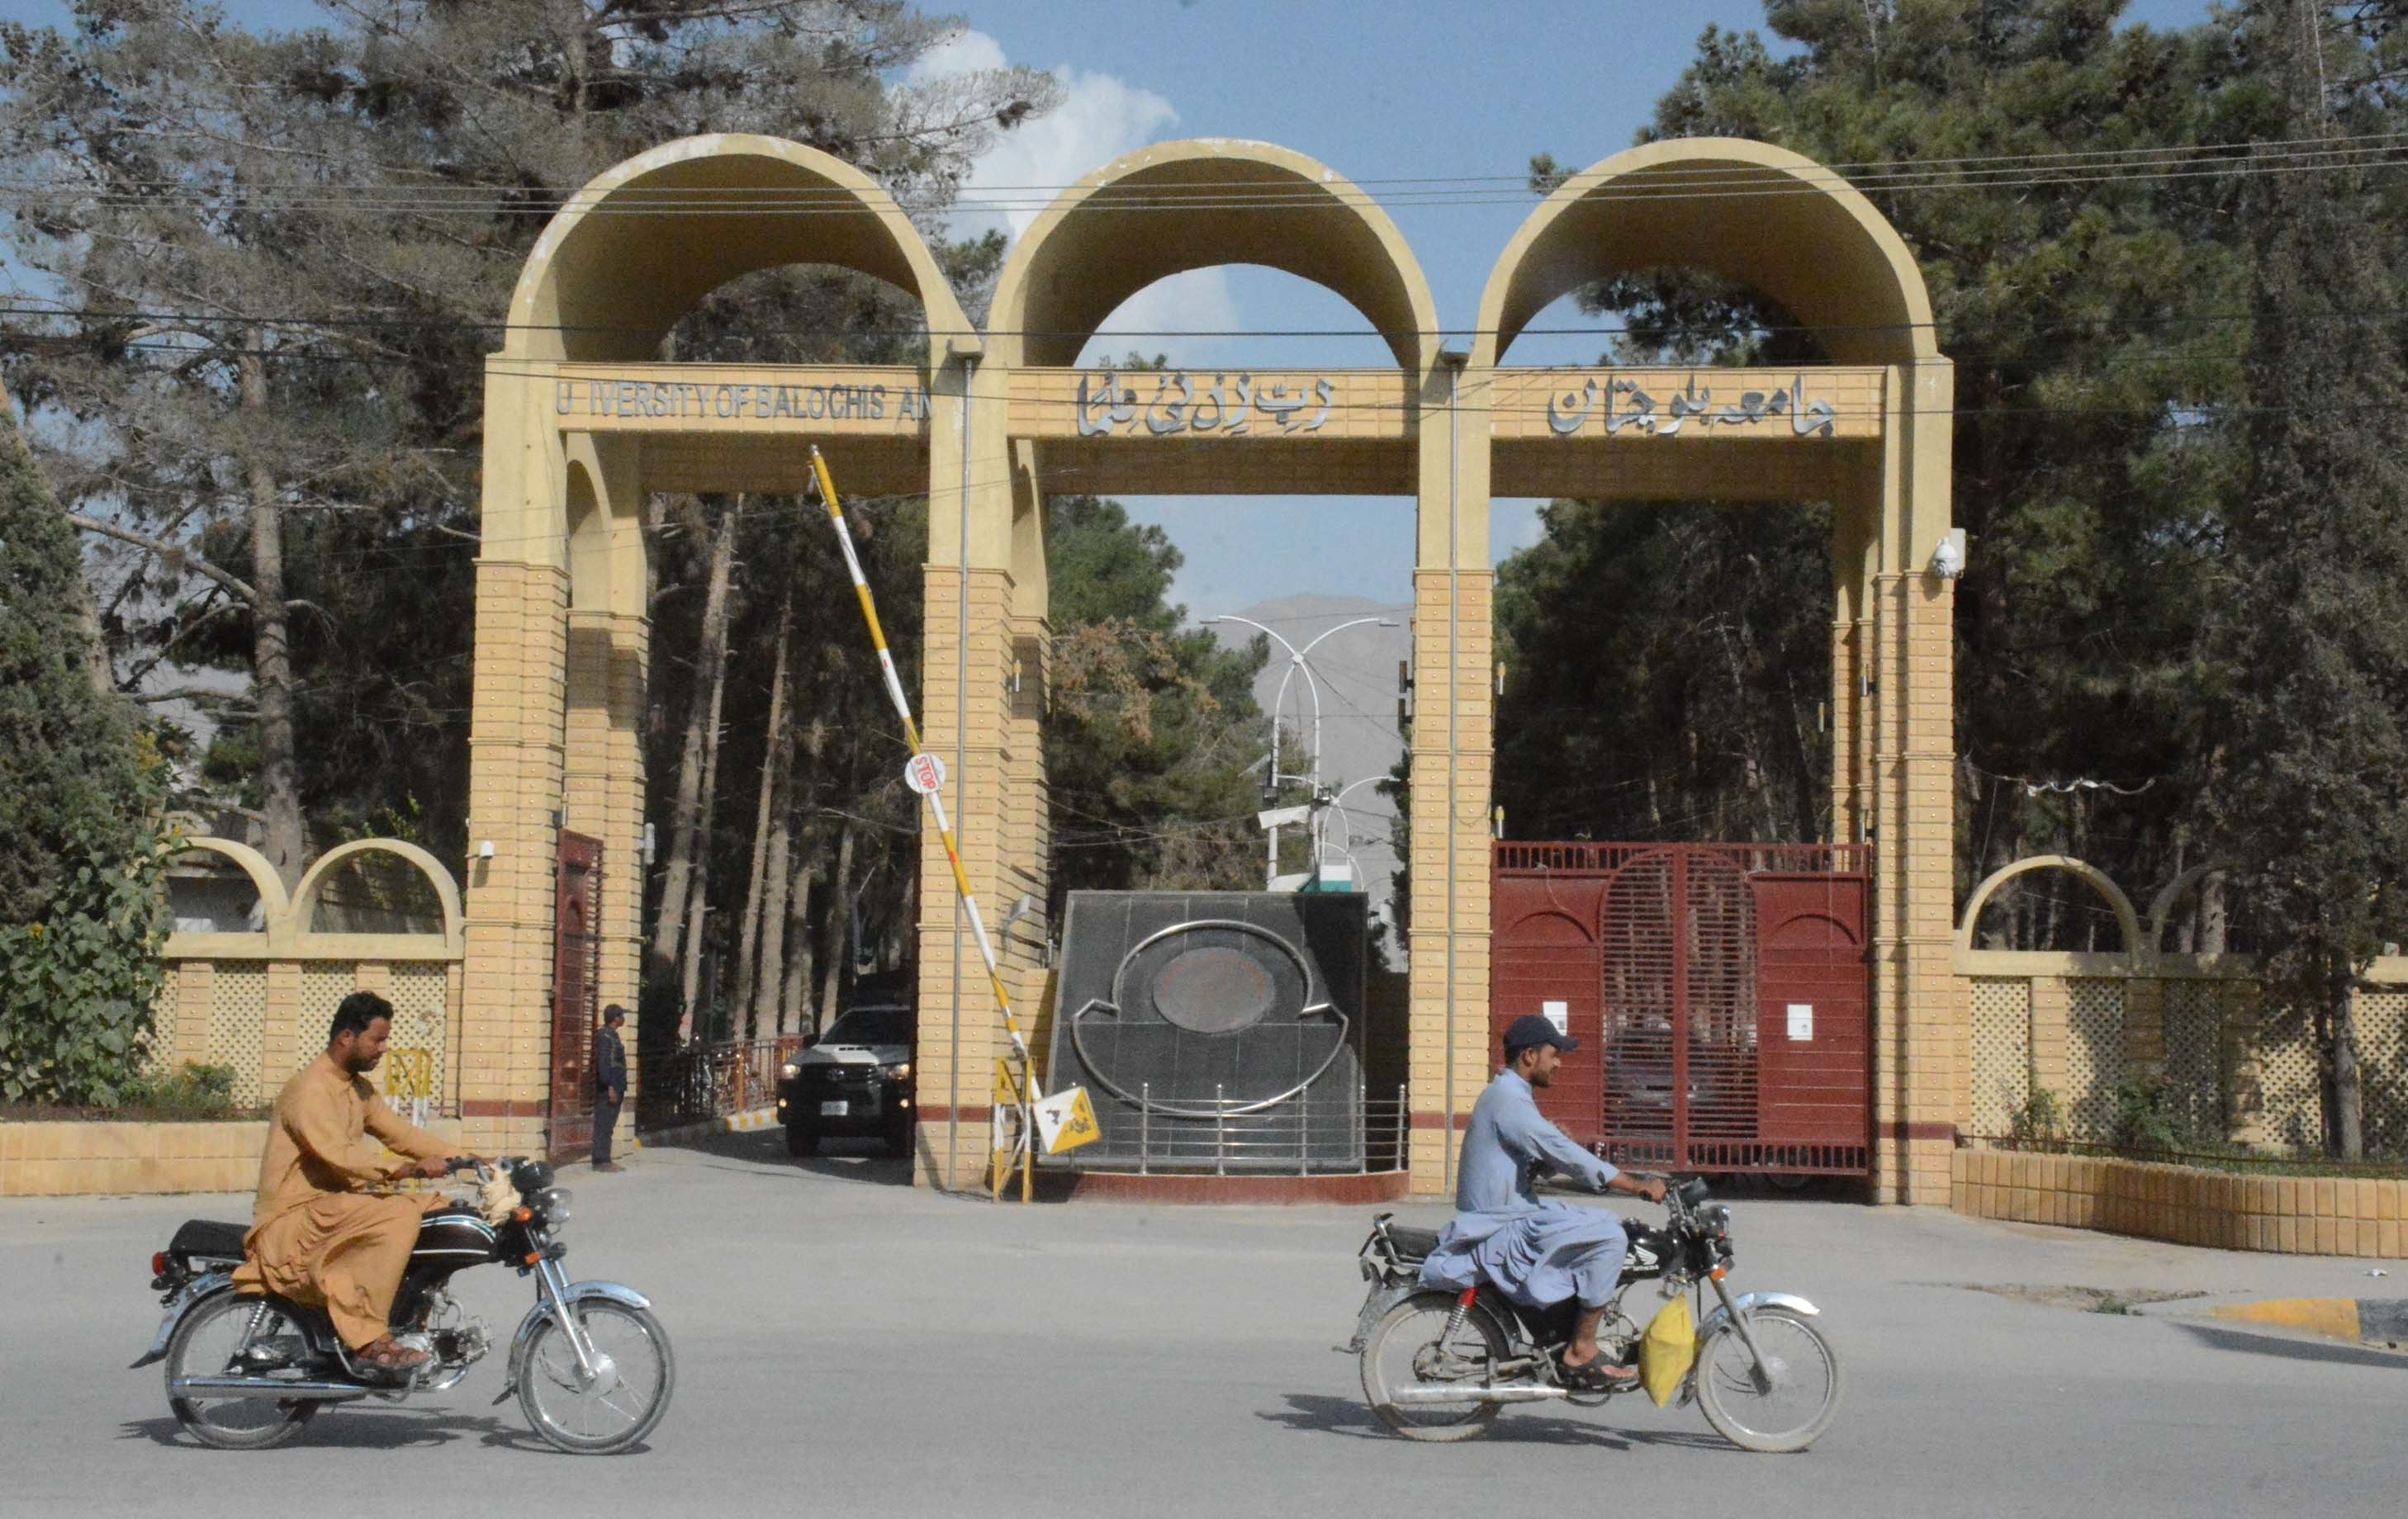 The entrance to University of Balochistan, Quetta. With classes on campus to resume soon, the provincial government should take steps to ensure that women students feel safe. — Photo credit: Mazhar Chandio